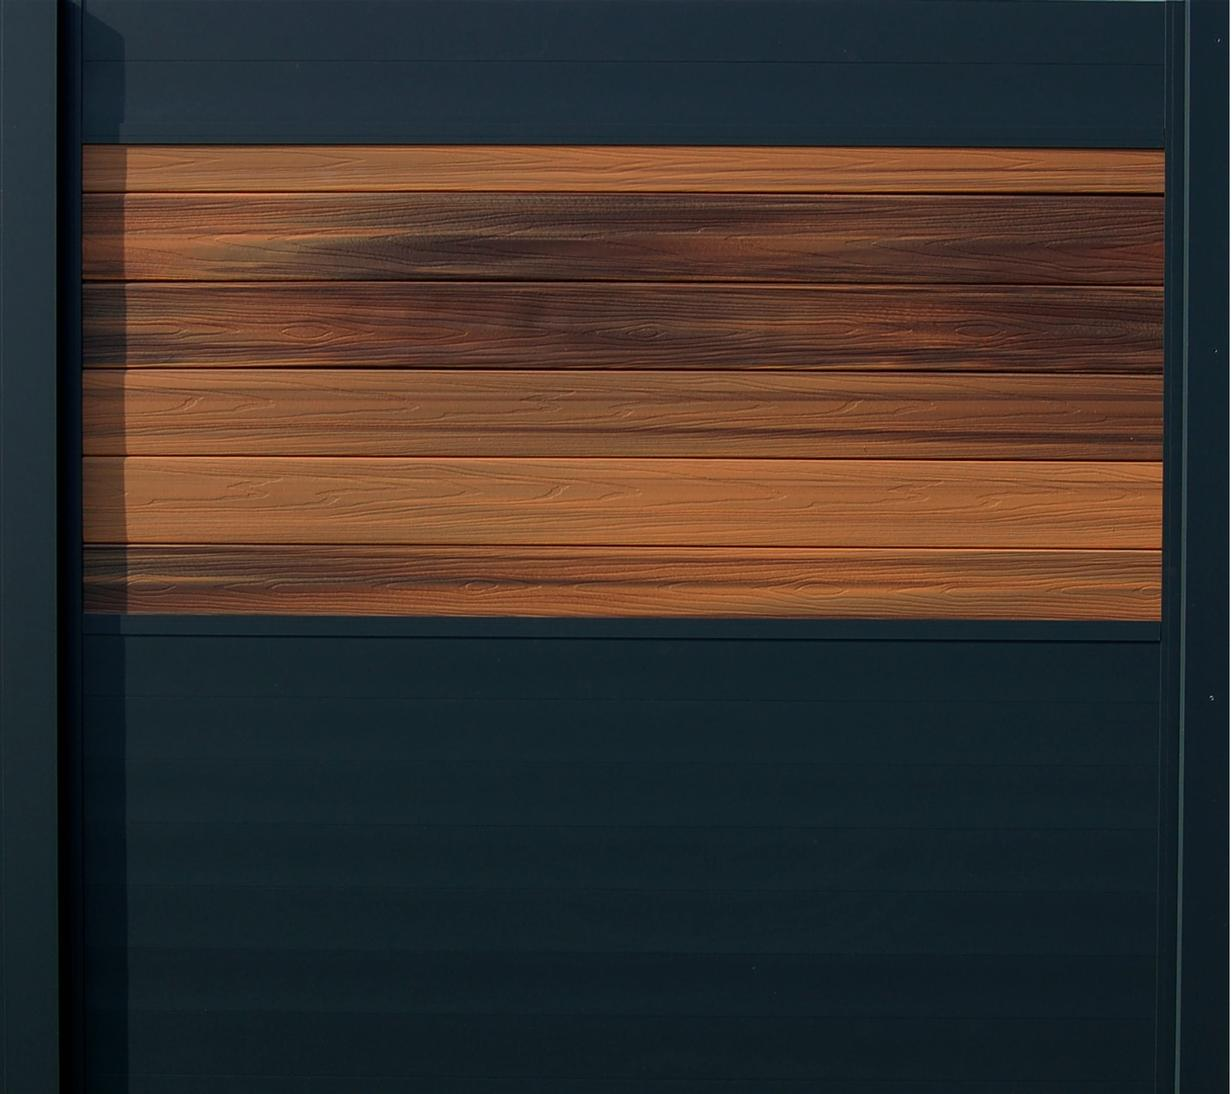 IdeAL scherm | Antraciet- Horizon Ipé | 180x200 | 6 planks